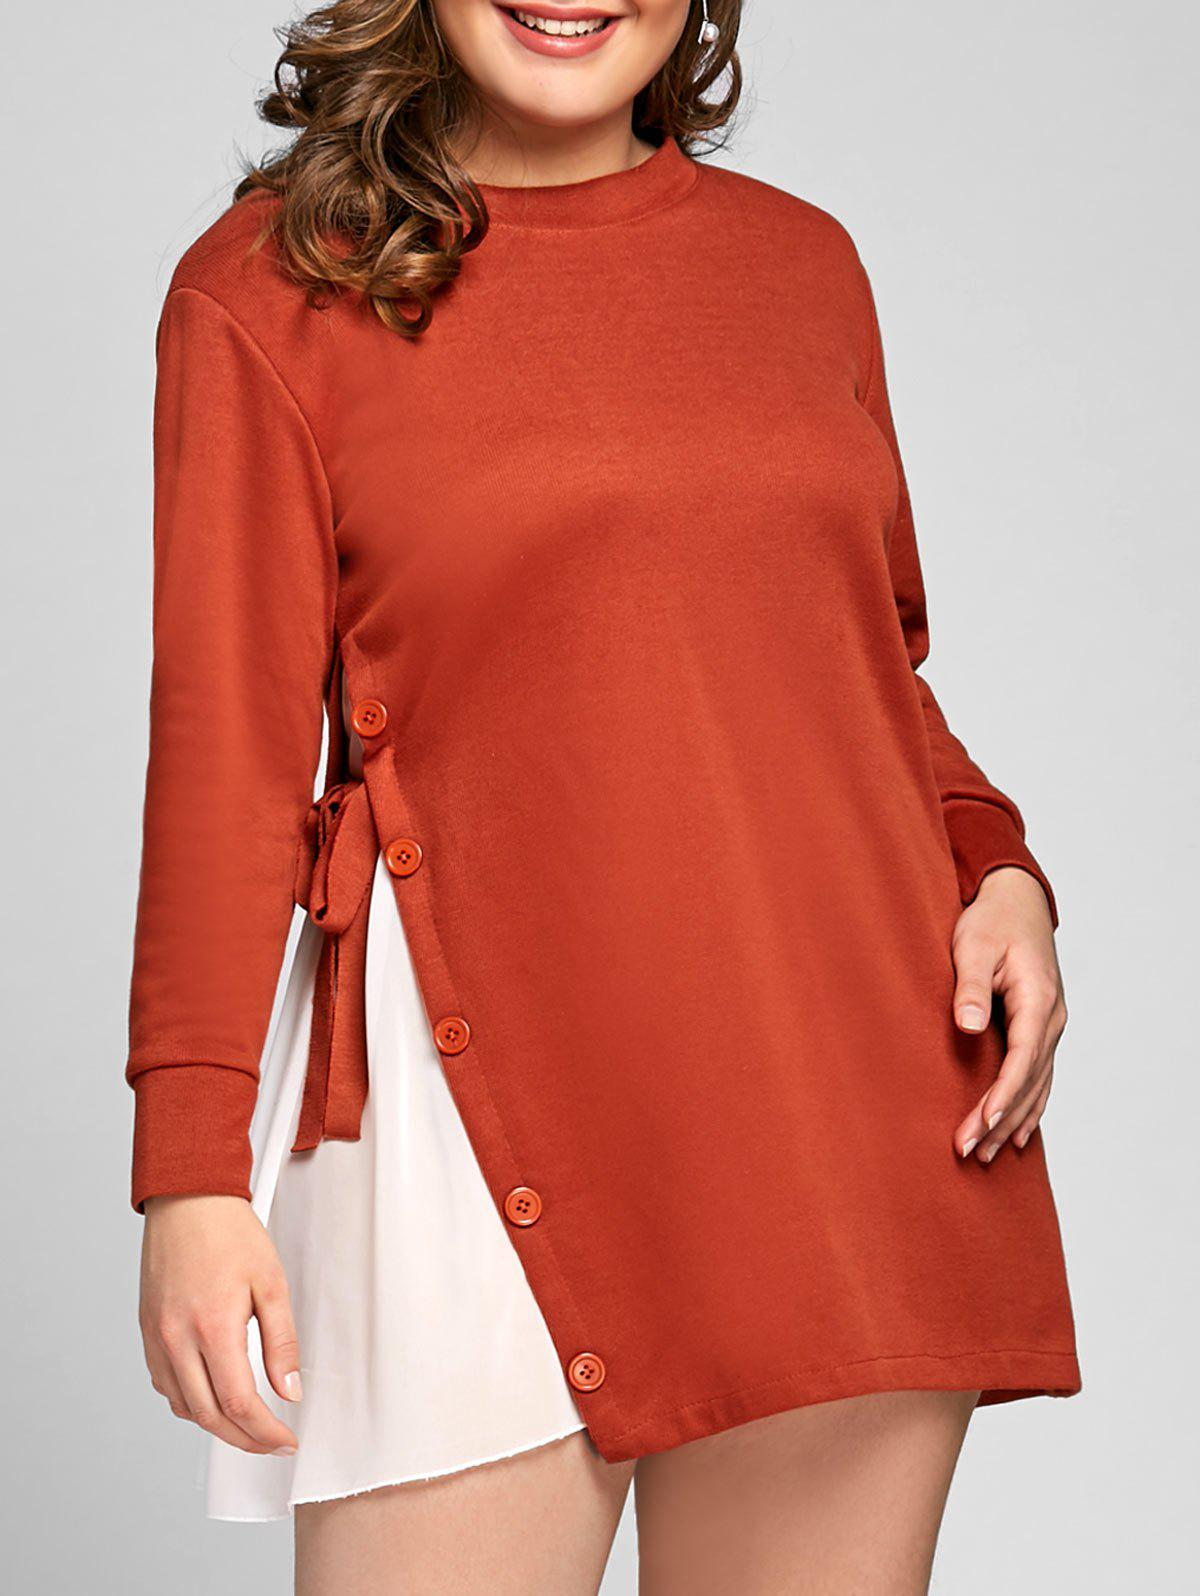 Plus Size Button Embellished Long Tunic Top plus size bowknot embellished tunic top